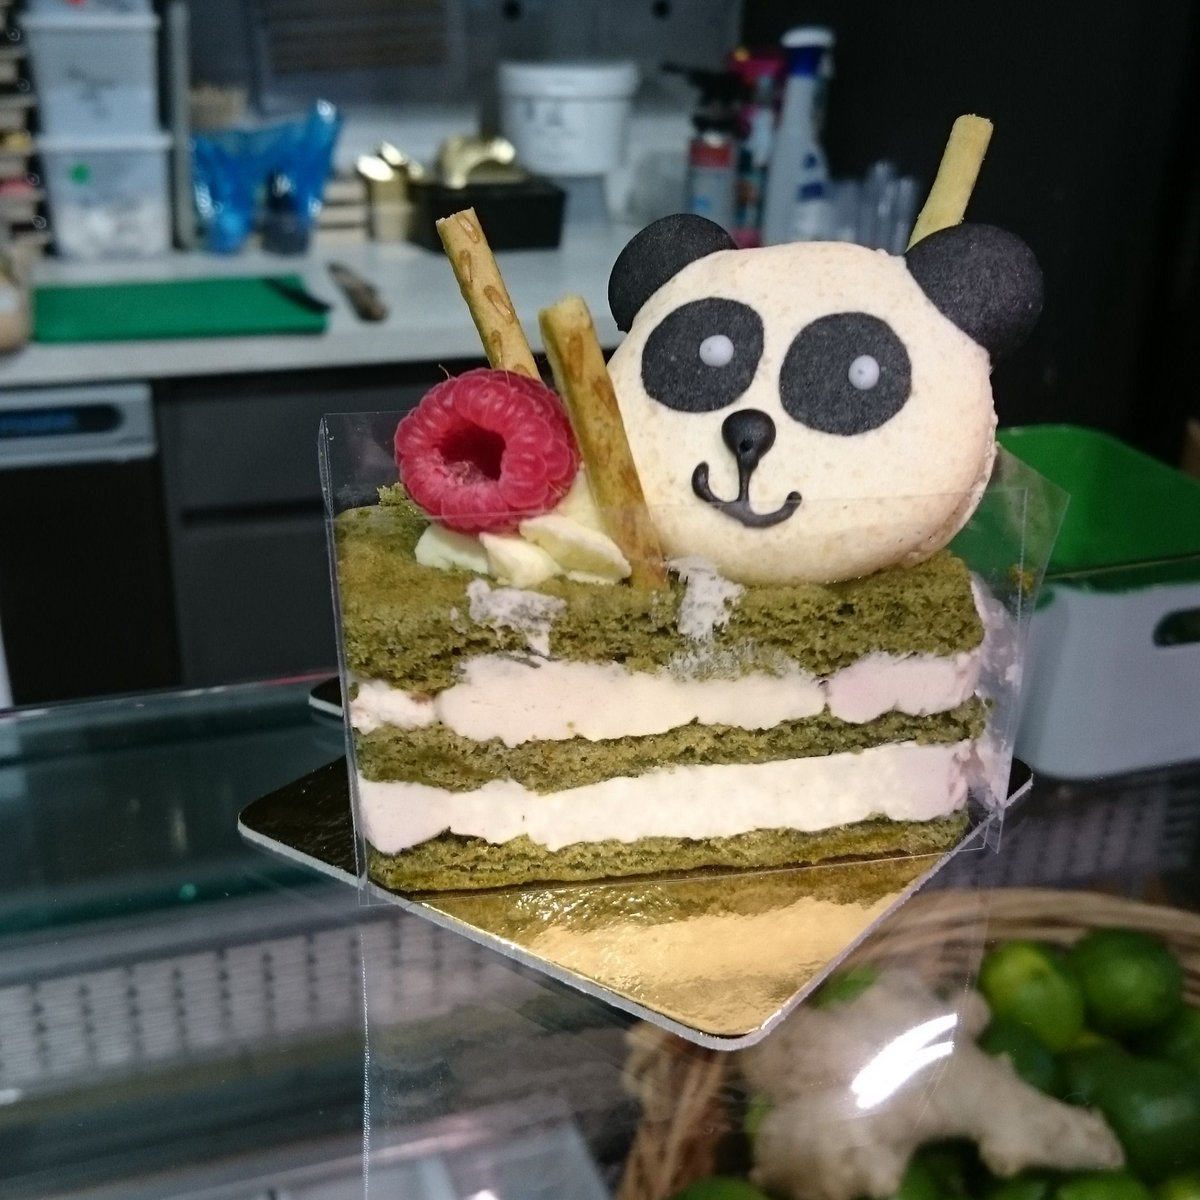 When you go to @oisoifood for noodles but instead come out with a panda!  #abiatoisoi #sheffieldissuper #sheffieldfoodfestival #patisserie <br>http://pic.twitter.com/aAH7mbu2jk